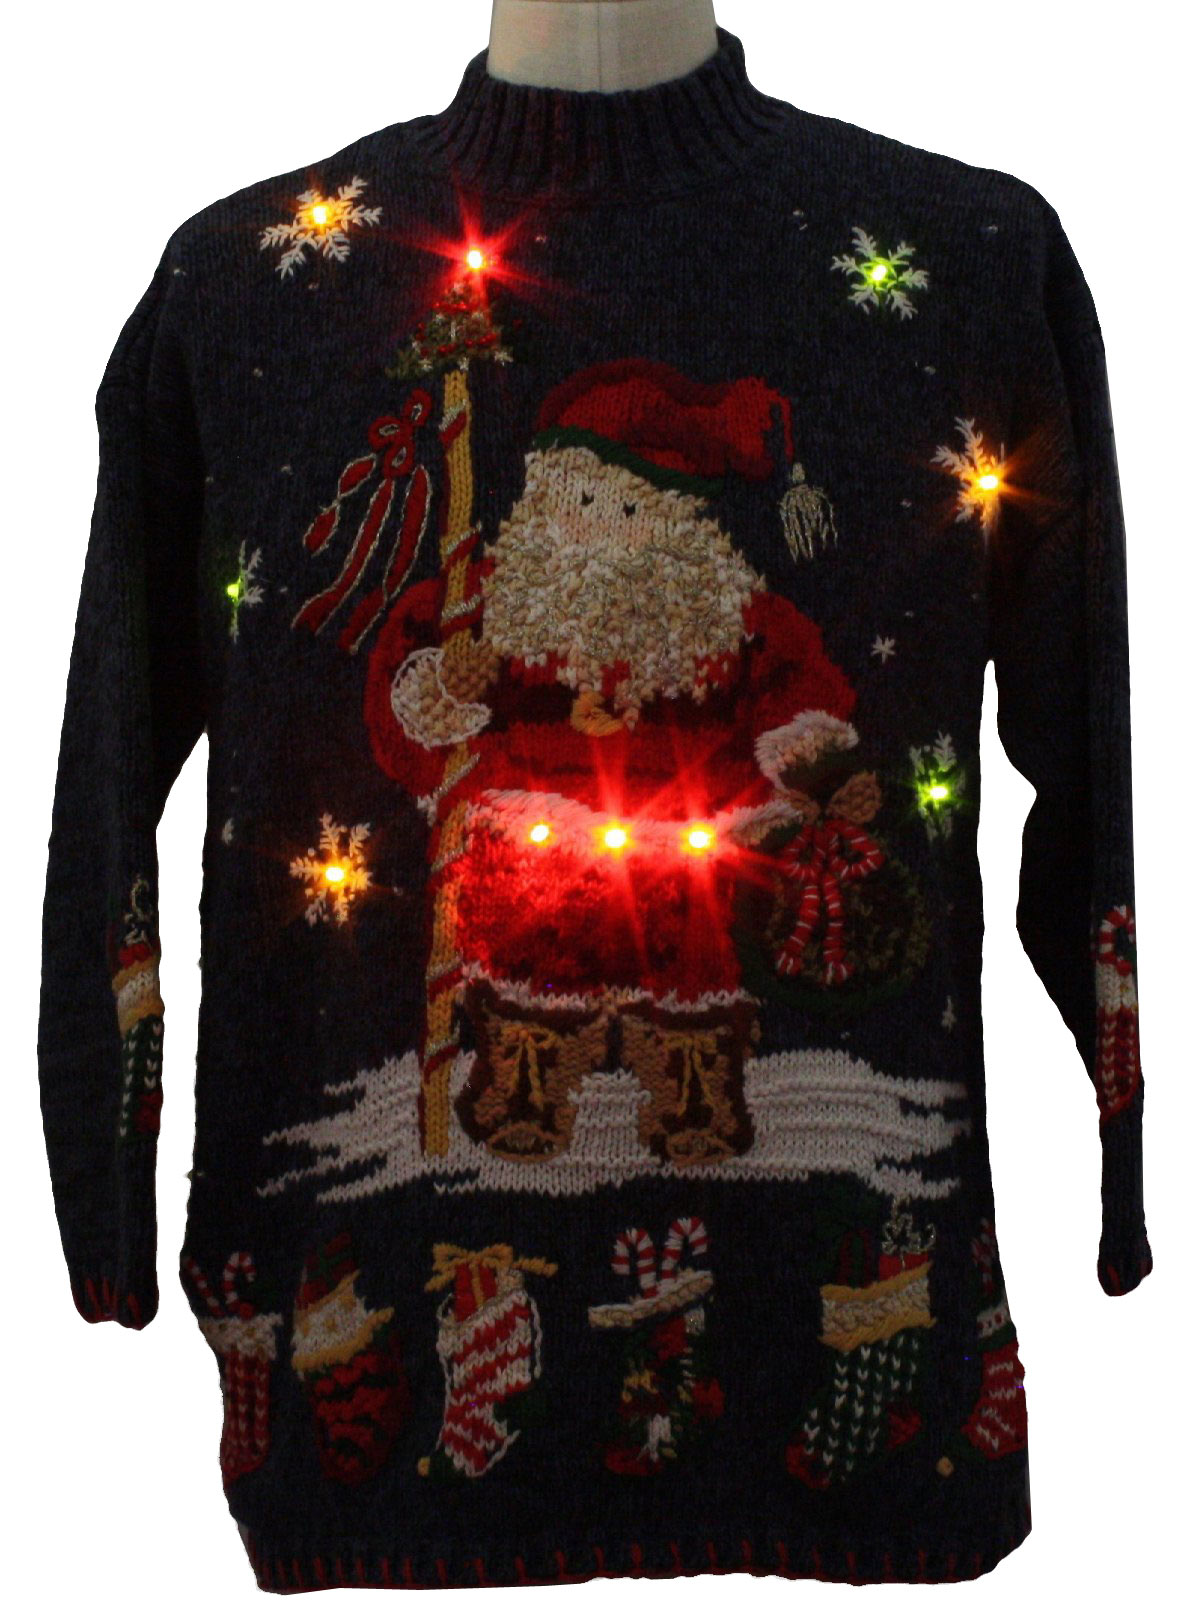 While the suggestions below were great ones a few years back when the selection of big & tall men's Christmas sweaters was almost nonexistent, the good news is companies finally stepped up to the plate and offer some hideous ugly Christmas sweaters in big & tall sizes.